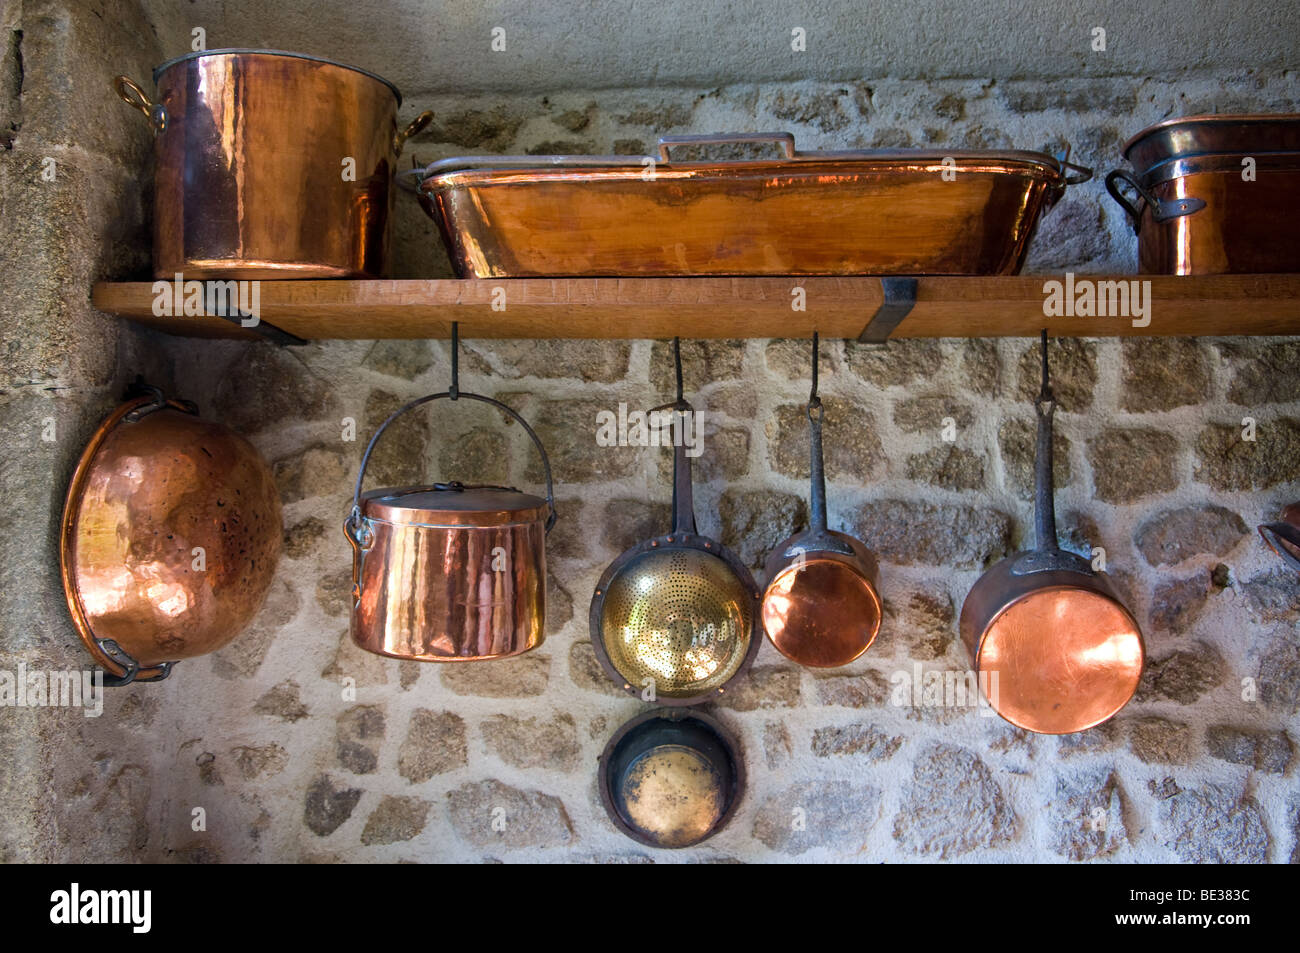 https www alamy com stock photo a range of brass pots and pans in a french chateau kitchen 25887776 html